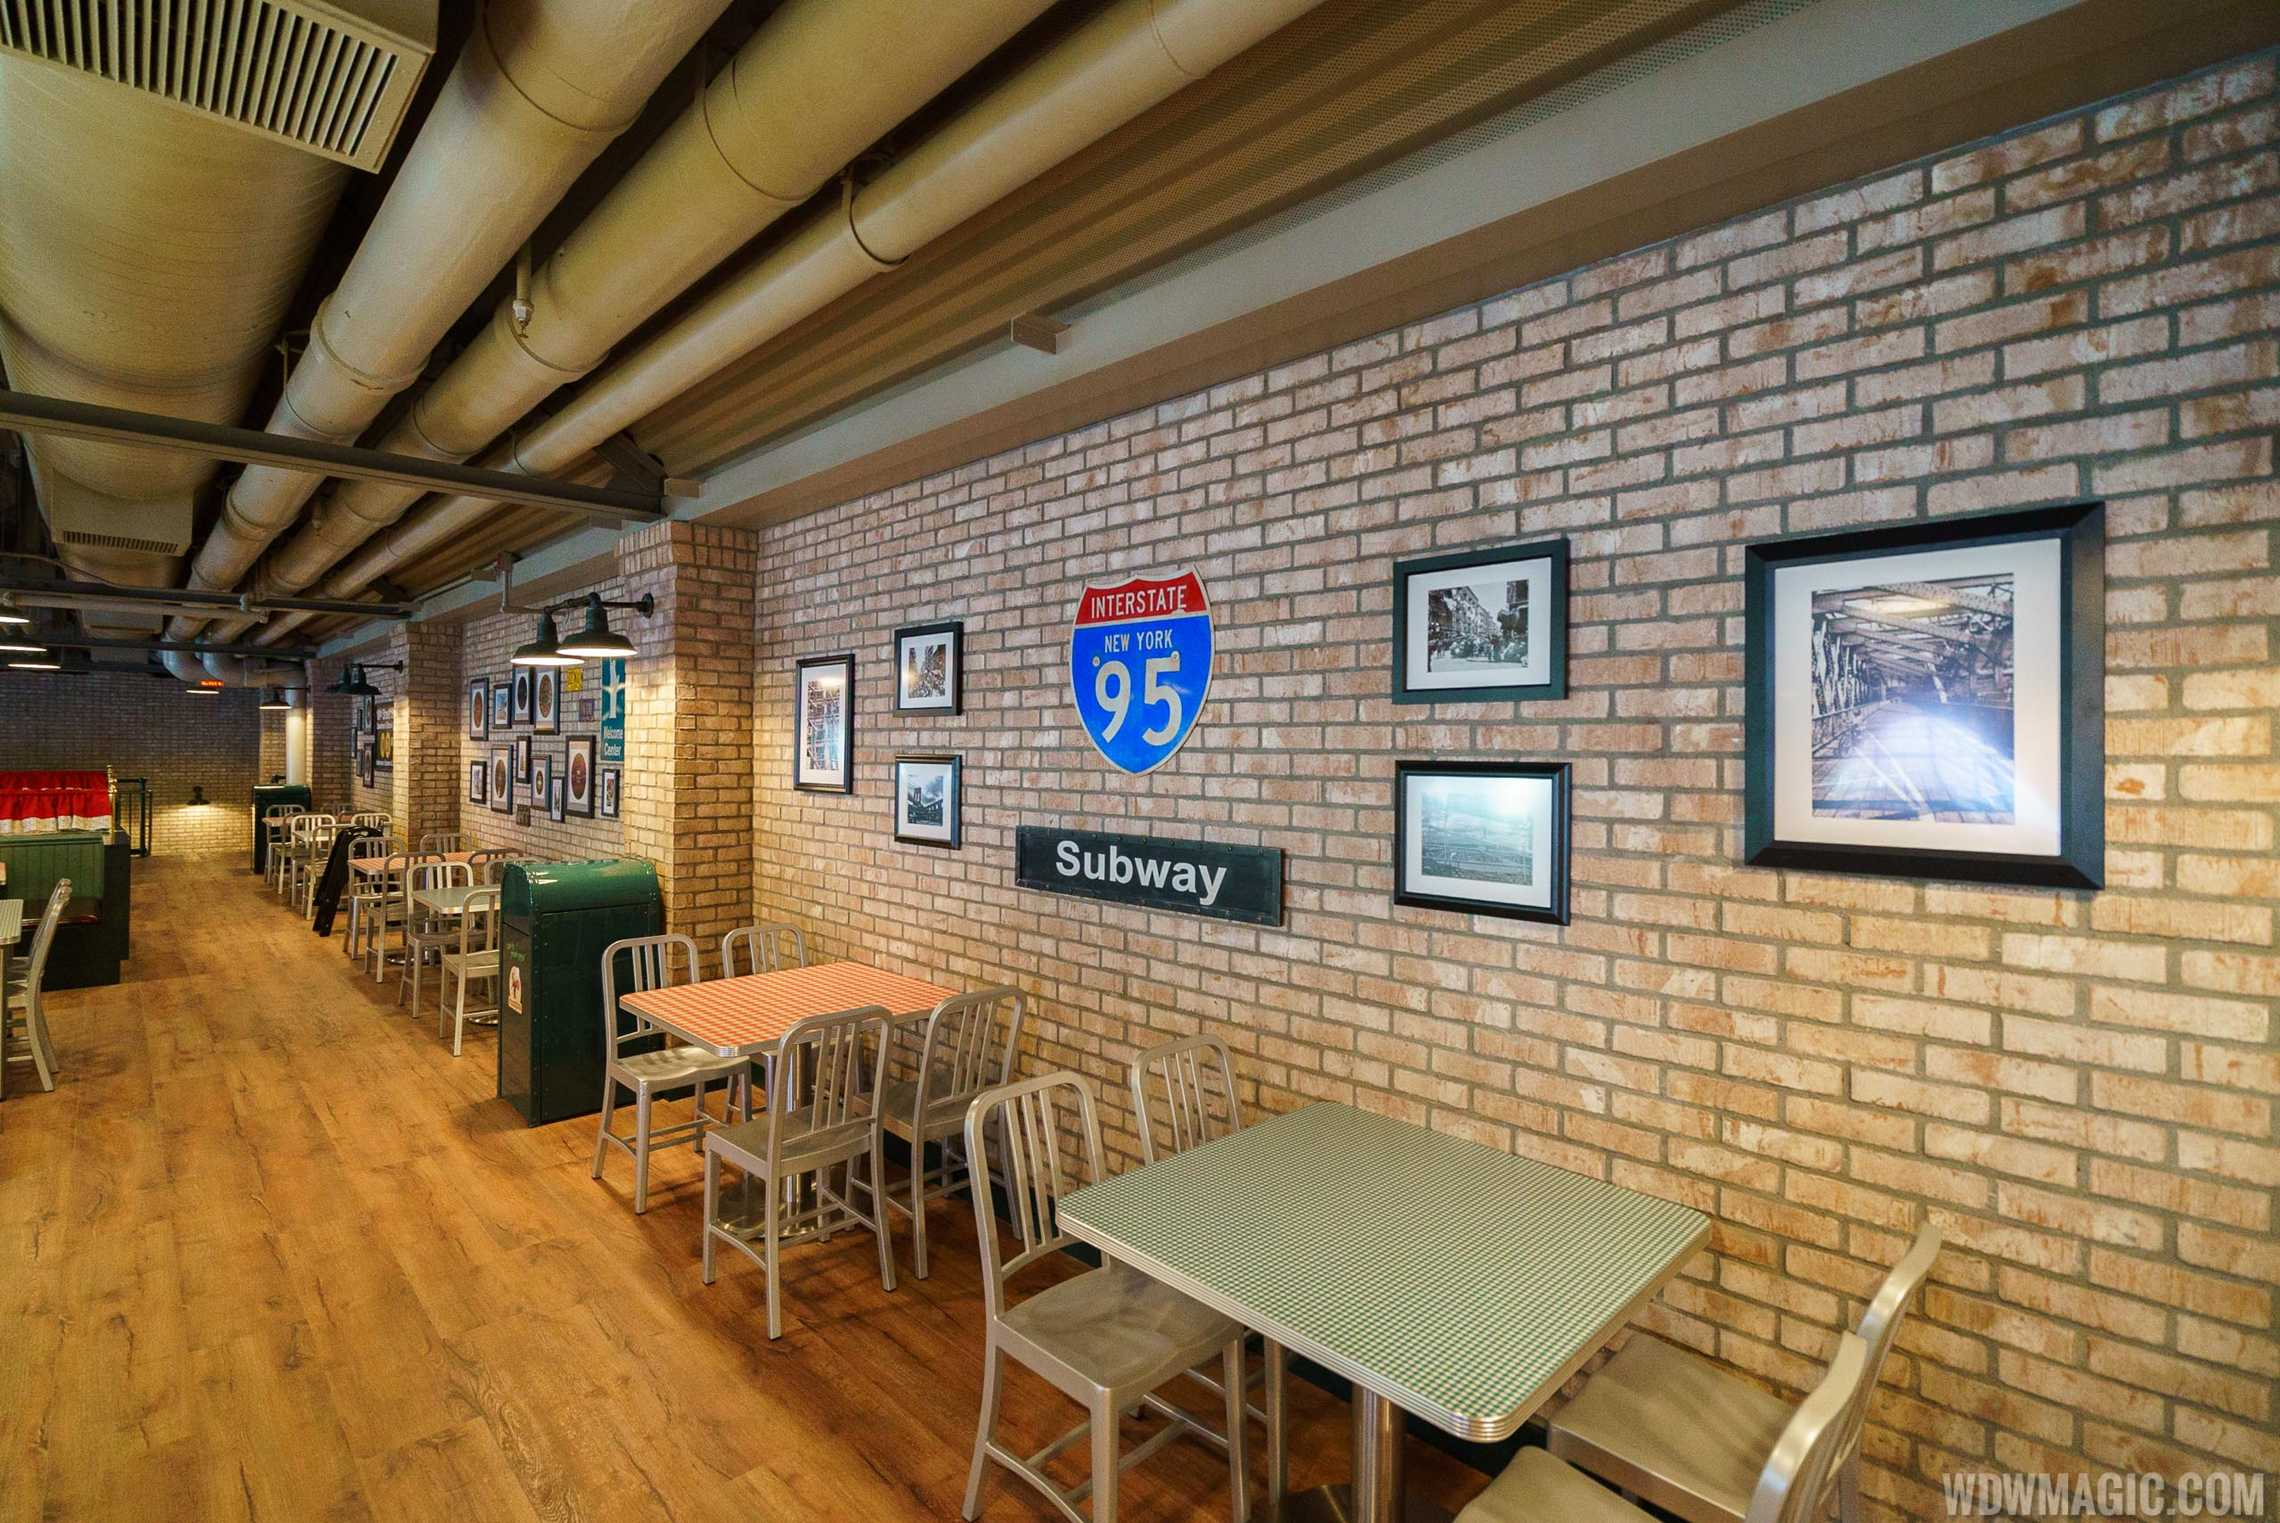 Inside PizzeRizzo - Upper level dining area